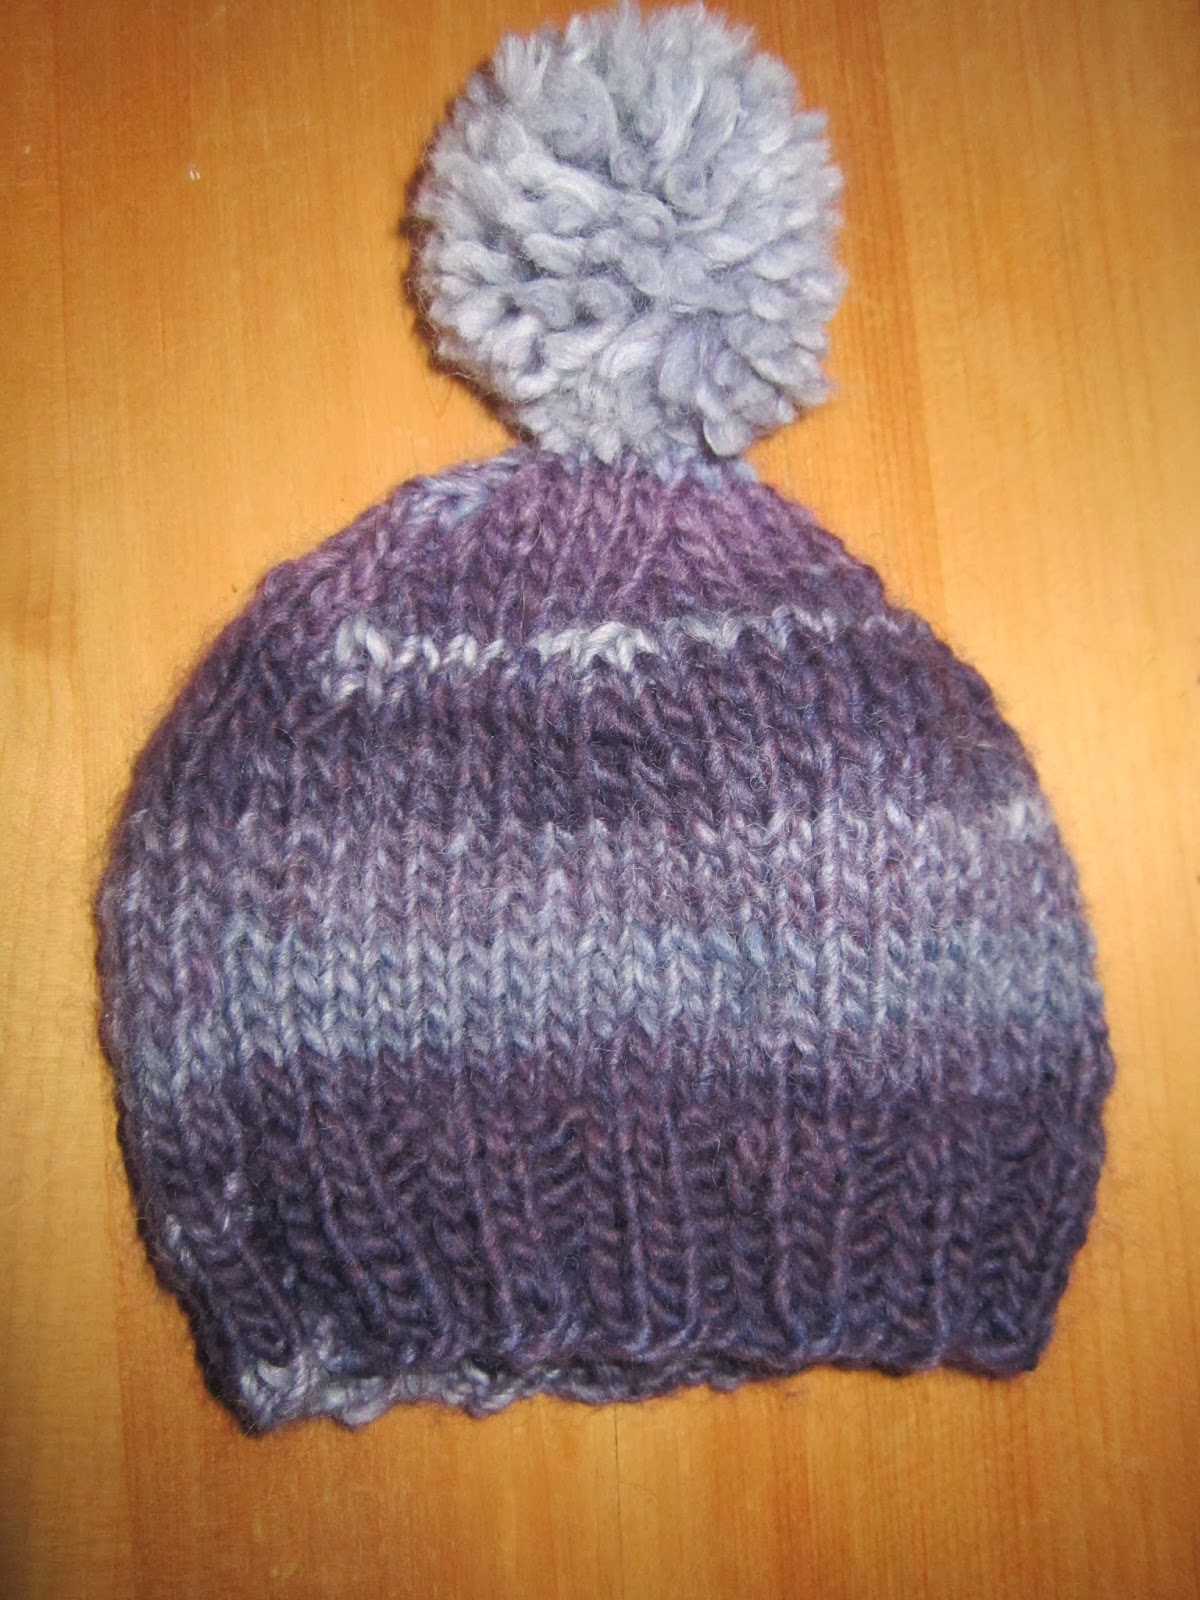 Jolly Day Dreaming........: Knitting a hat for a newborn ...